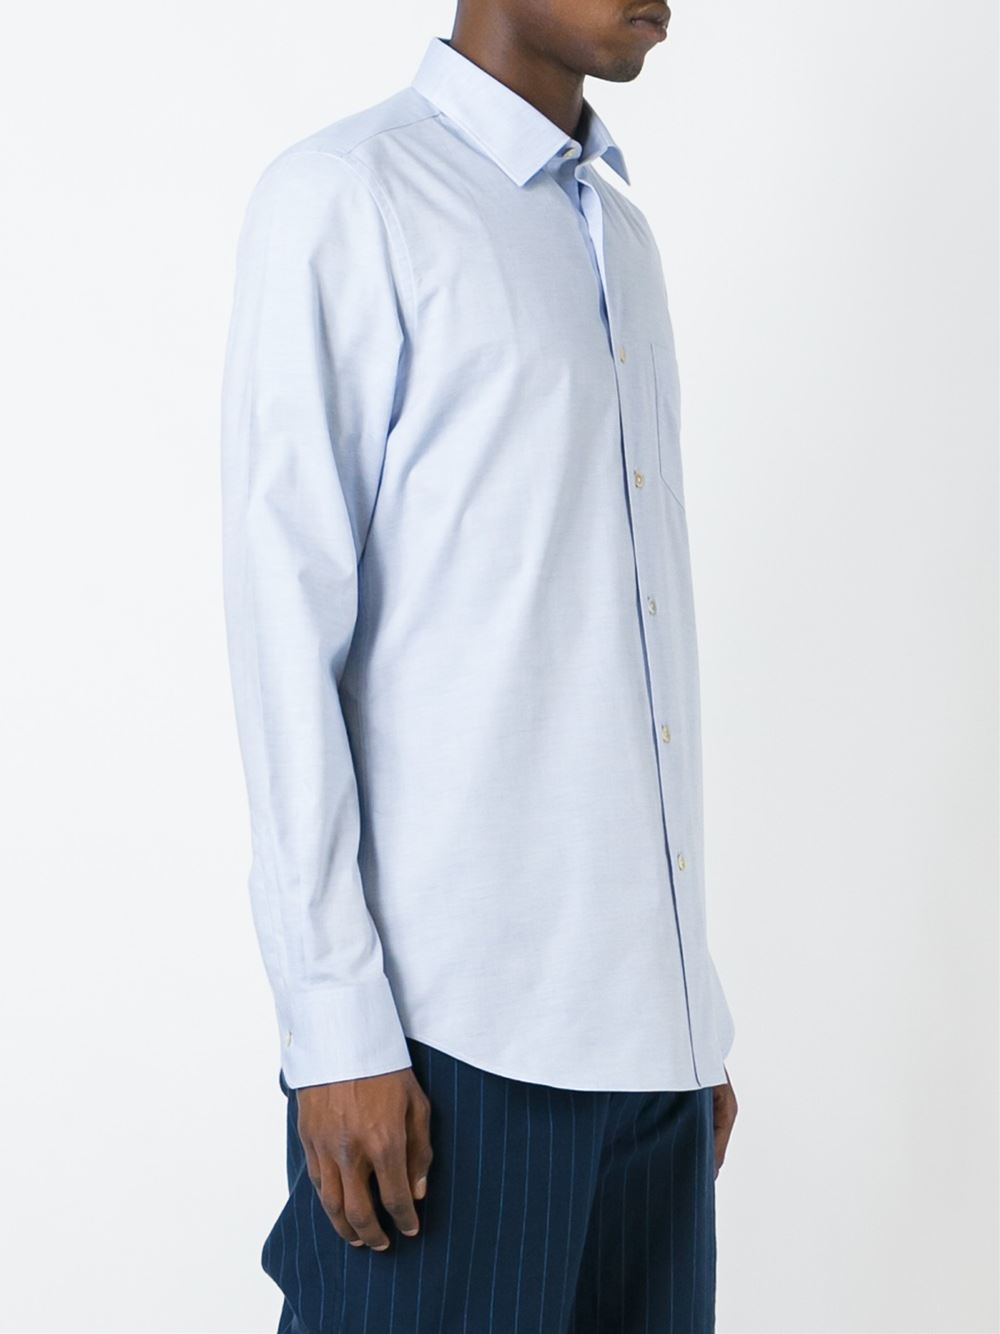 Paul smith classic button down shirt in blue for men lyst for Preppy button down shirts